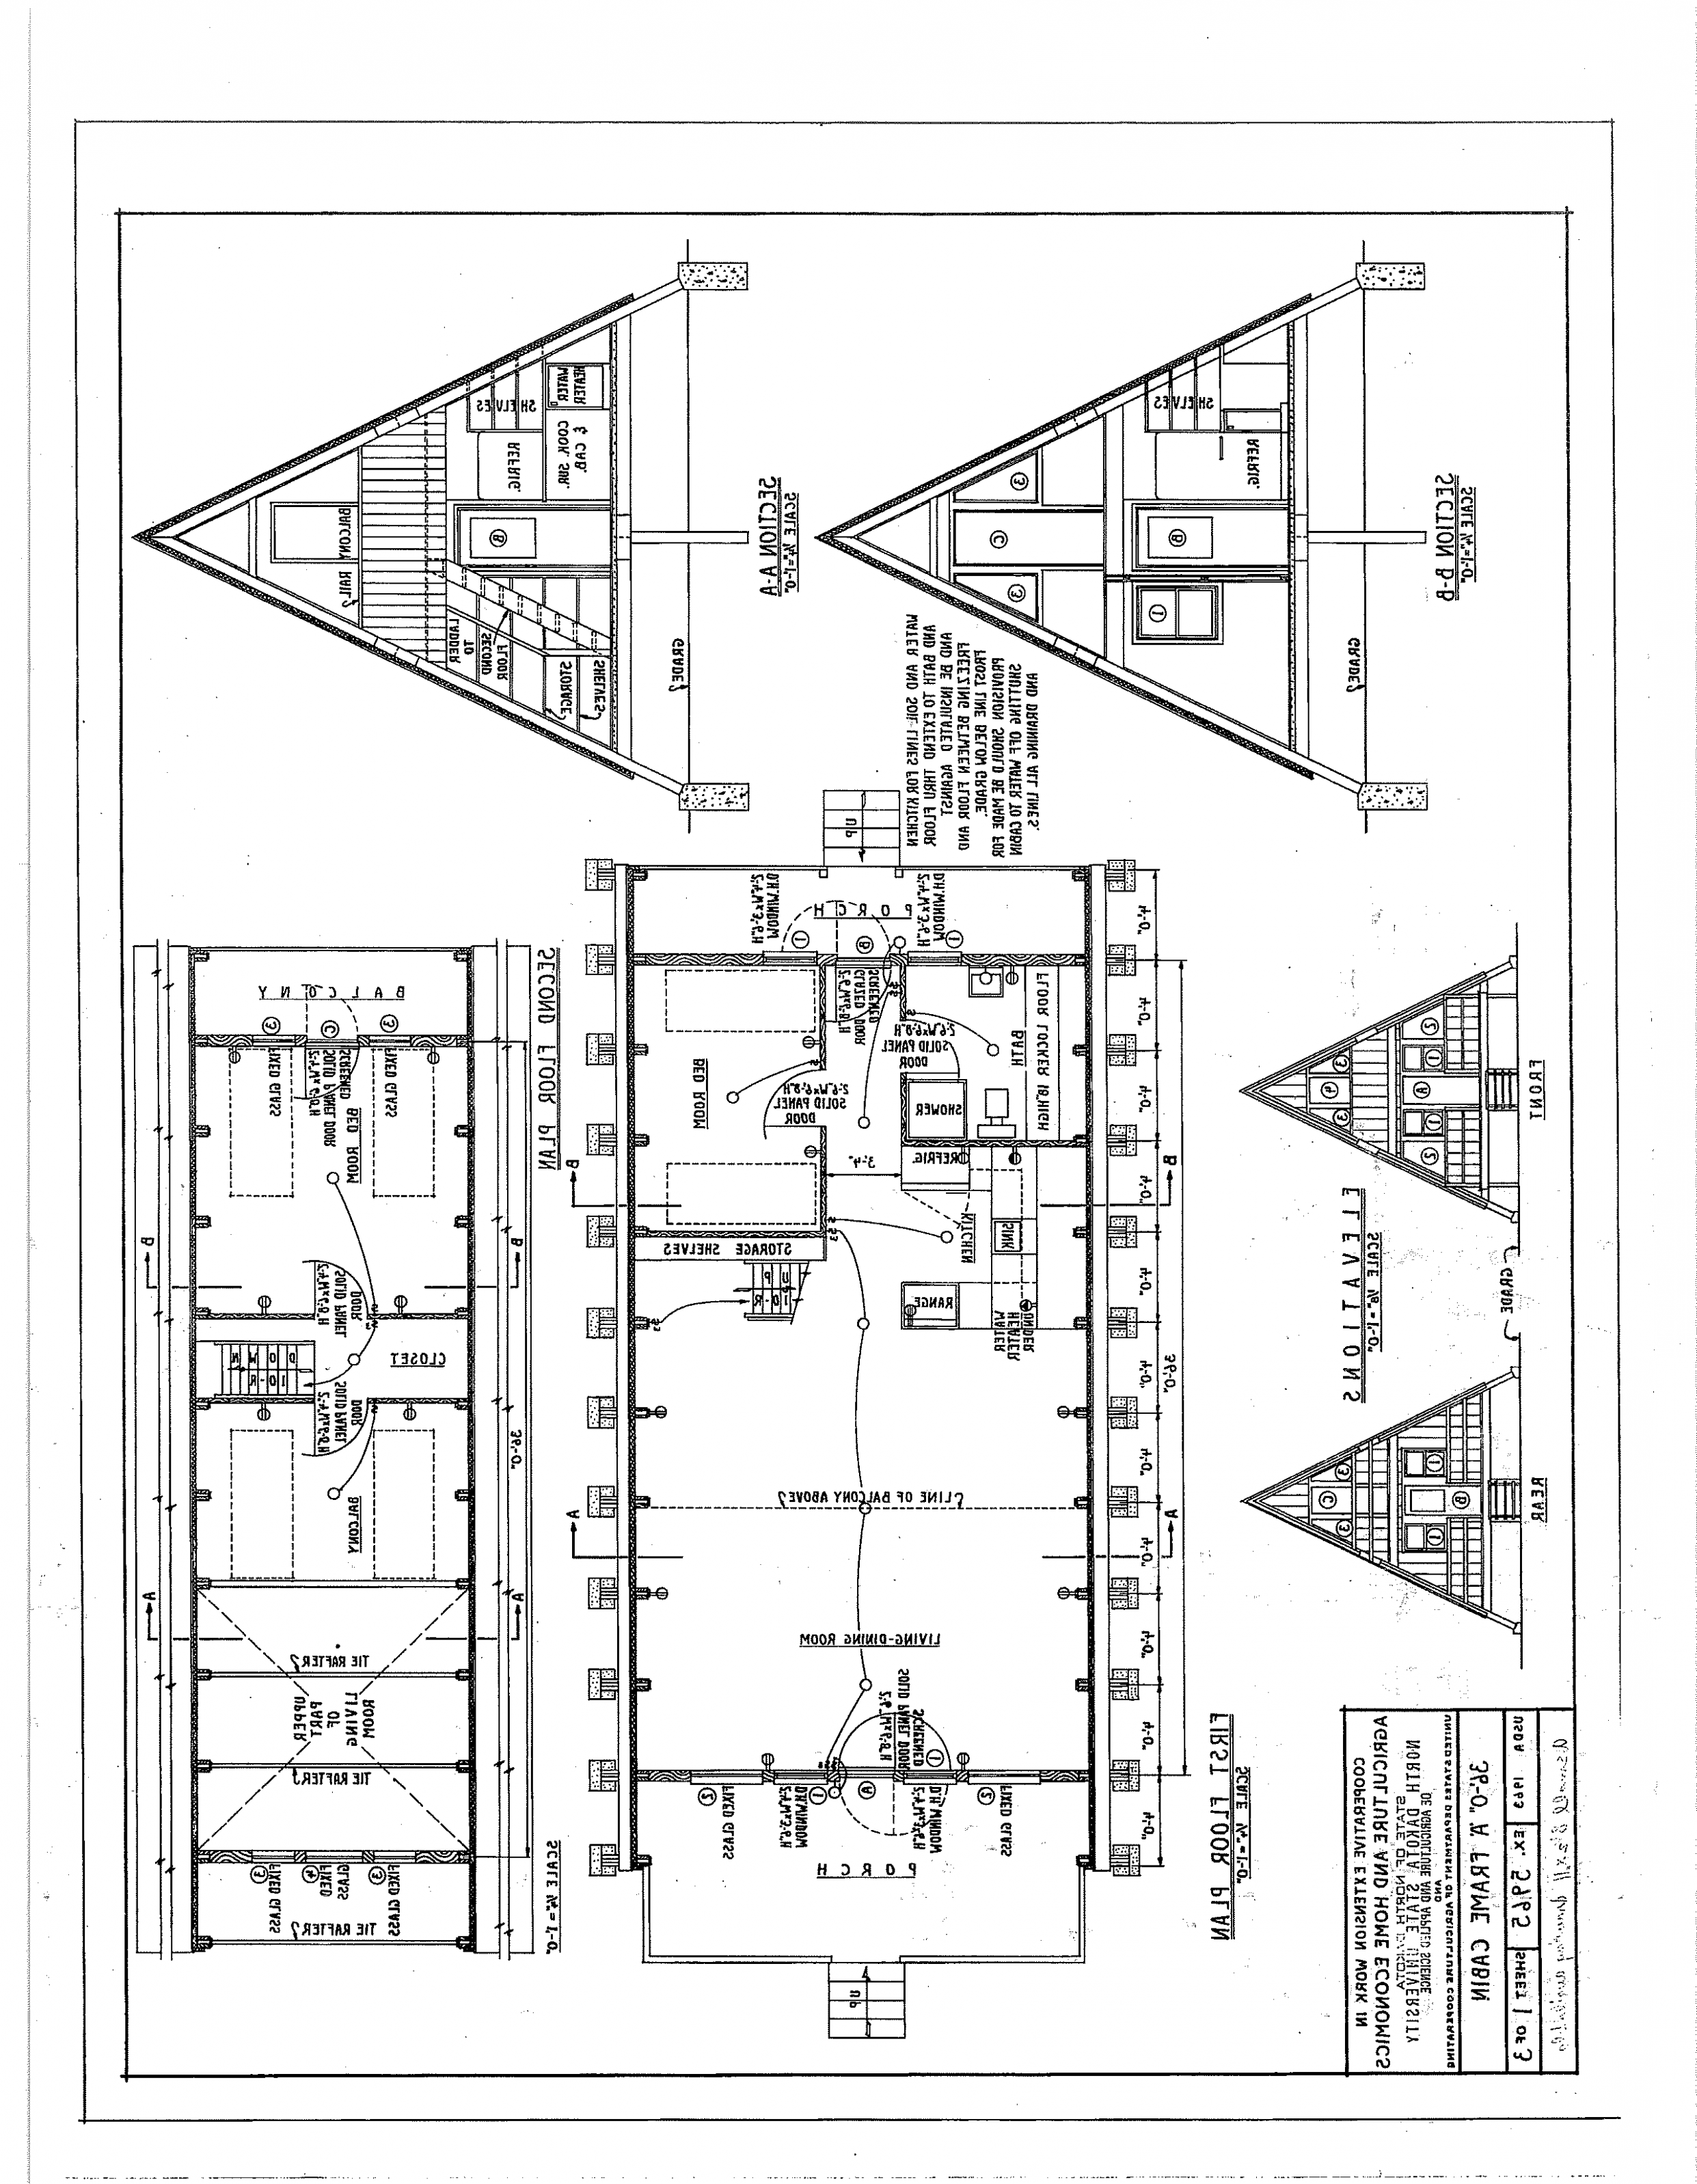 Free A Frame Cabin Plans Blueprints Construction Documents Sds Plans Free House Plans Bedroom Liv A Frame Cabin Plans Tiny House Layout Small House Plans